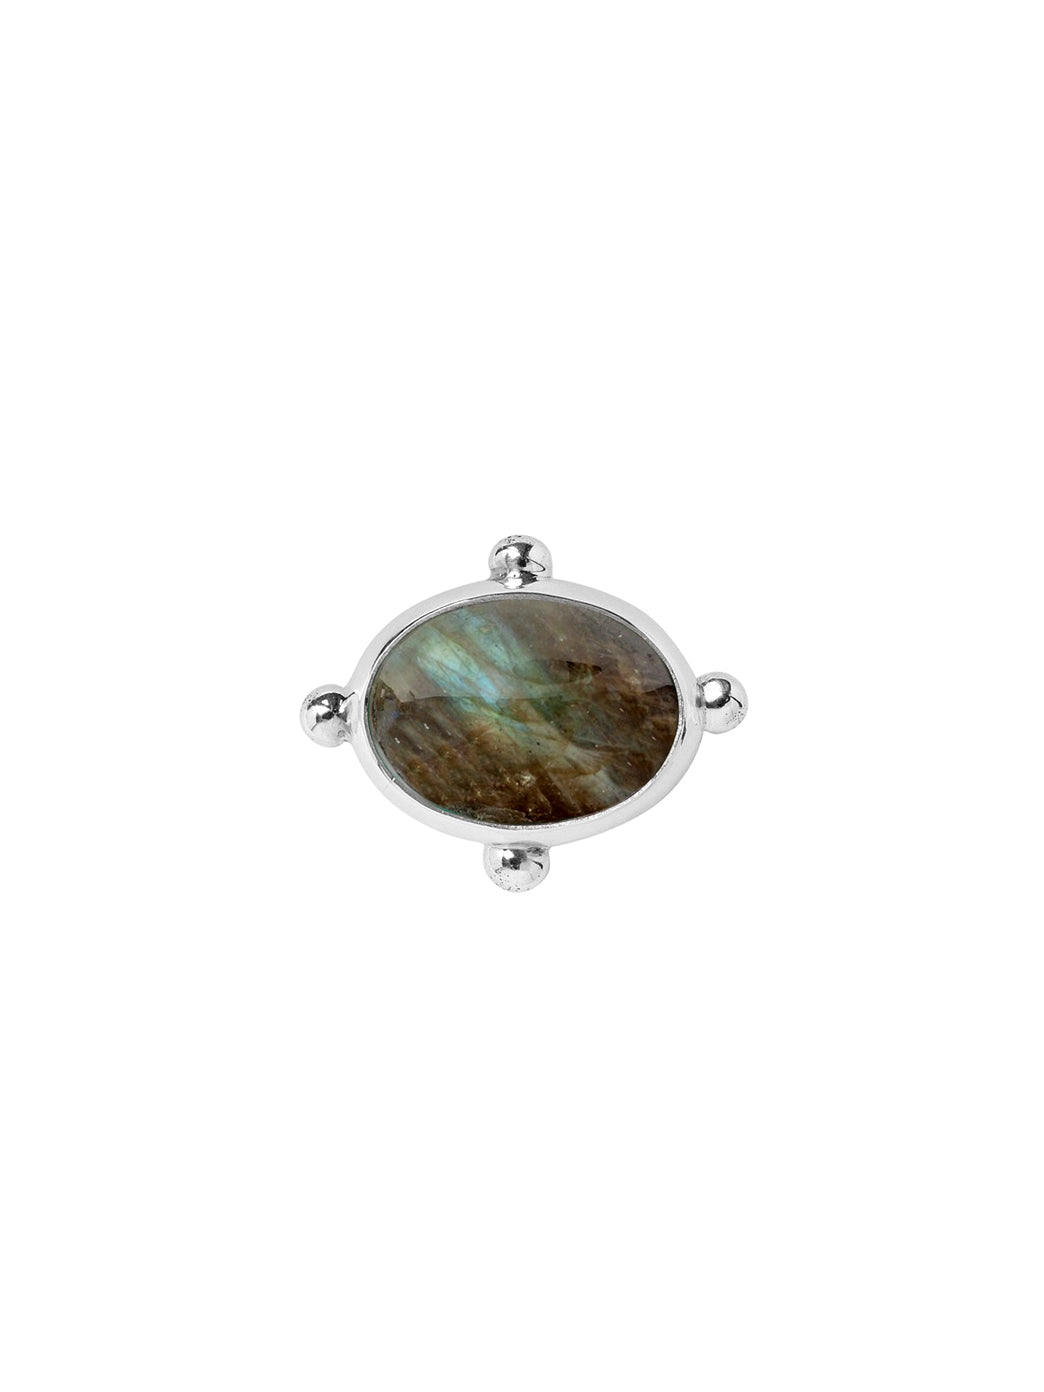 Fiorina Jewellery Small Oval Fishband Ring Labradorite